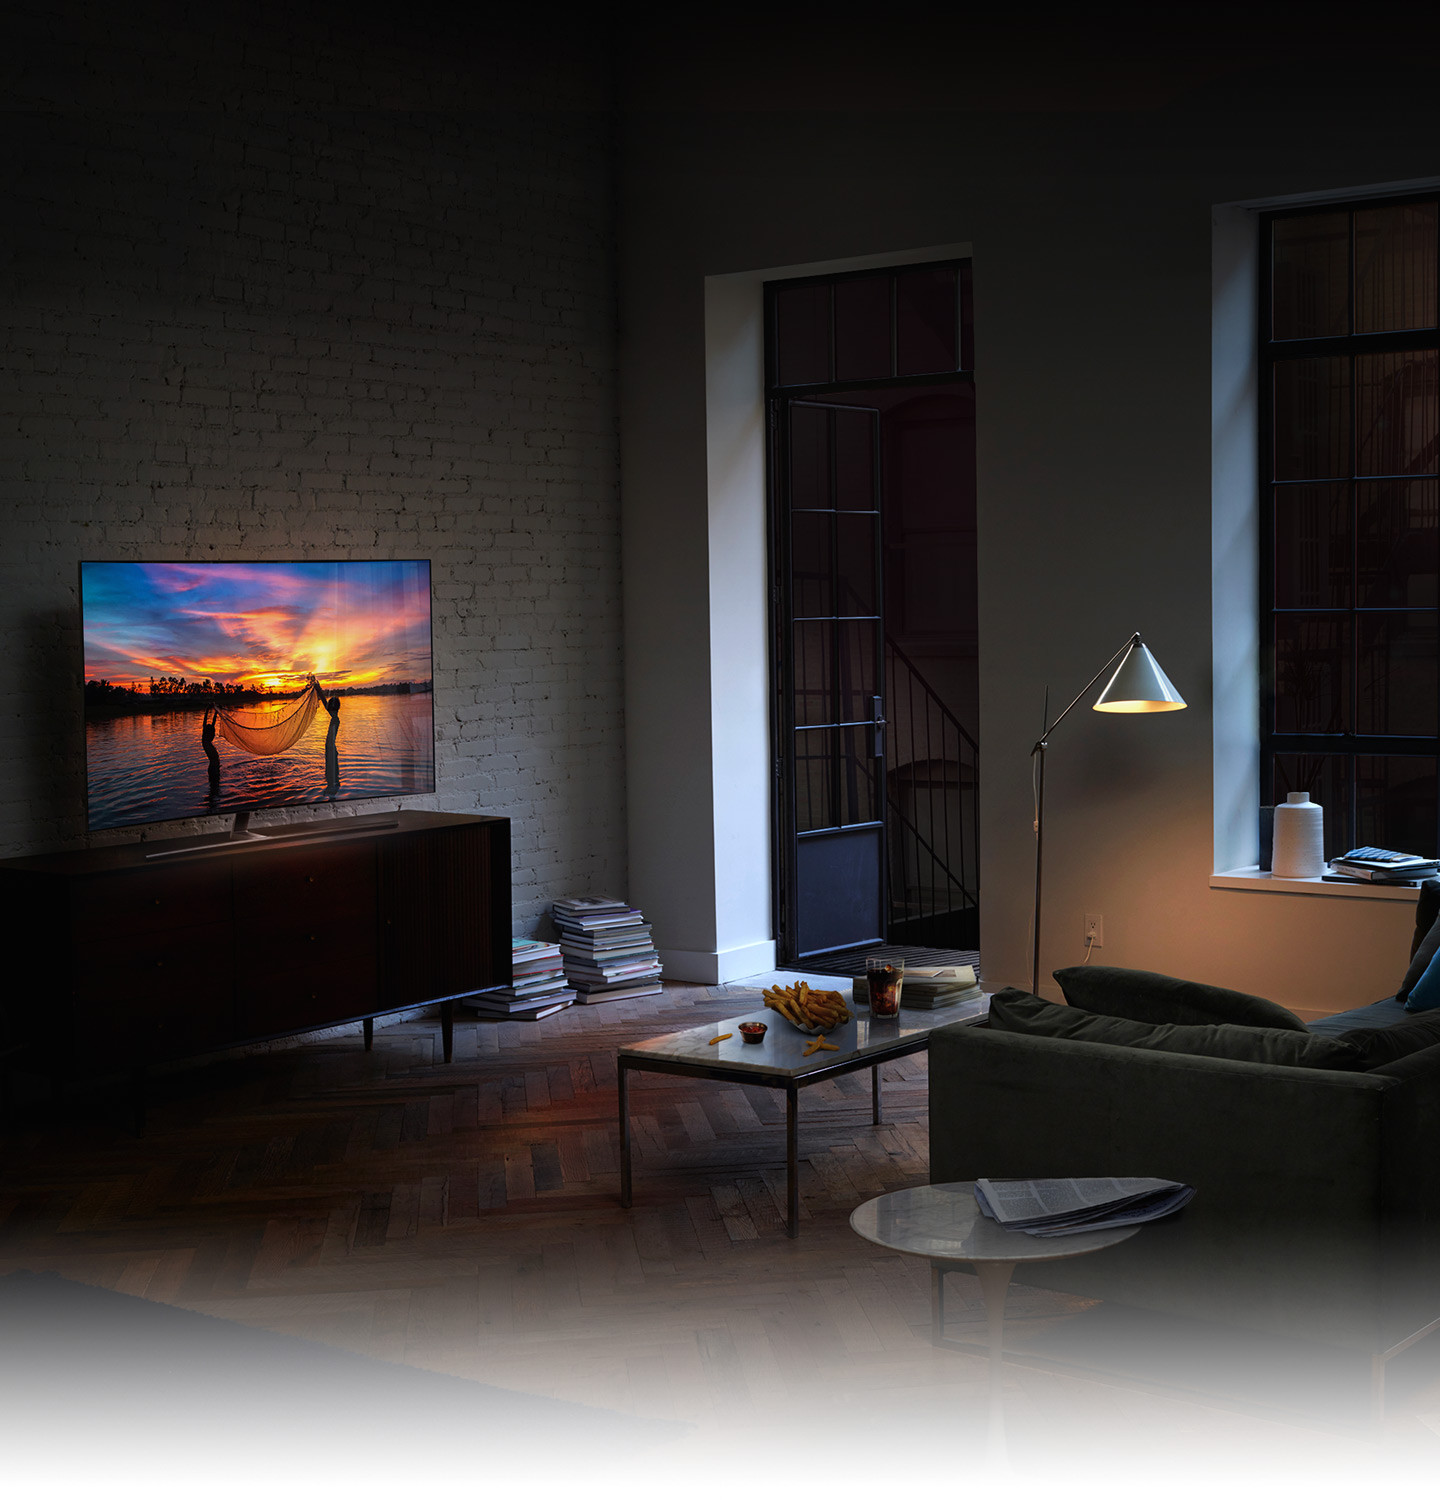 Samsung QLED TV With Quantum Dots: Features & Accessories